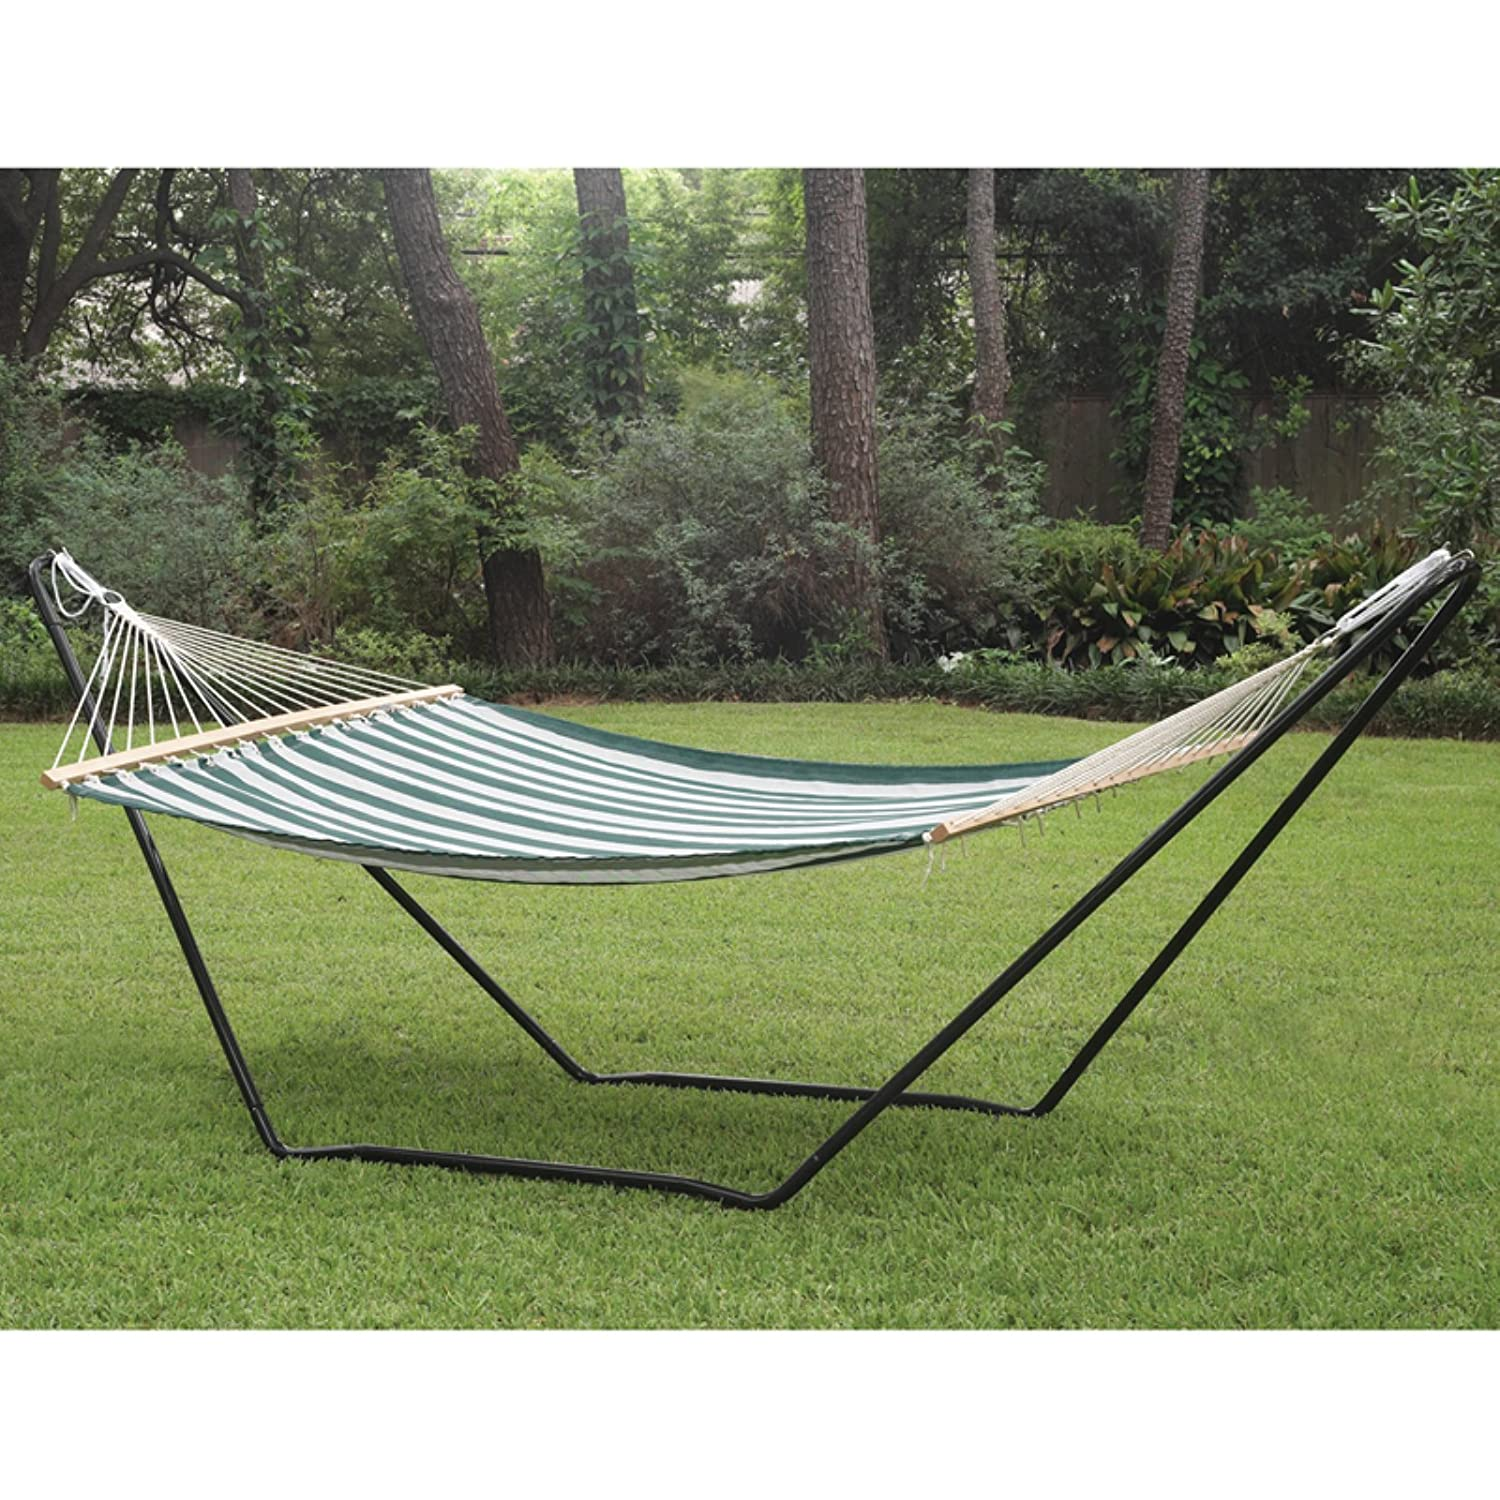 steel hammock stand camping and hiking equipment patio lawn u0026 garden